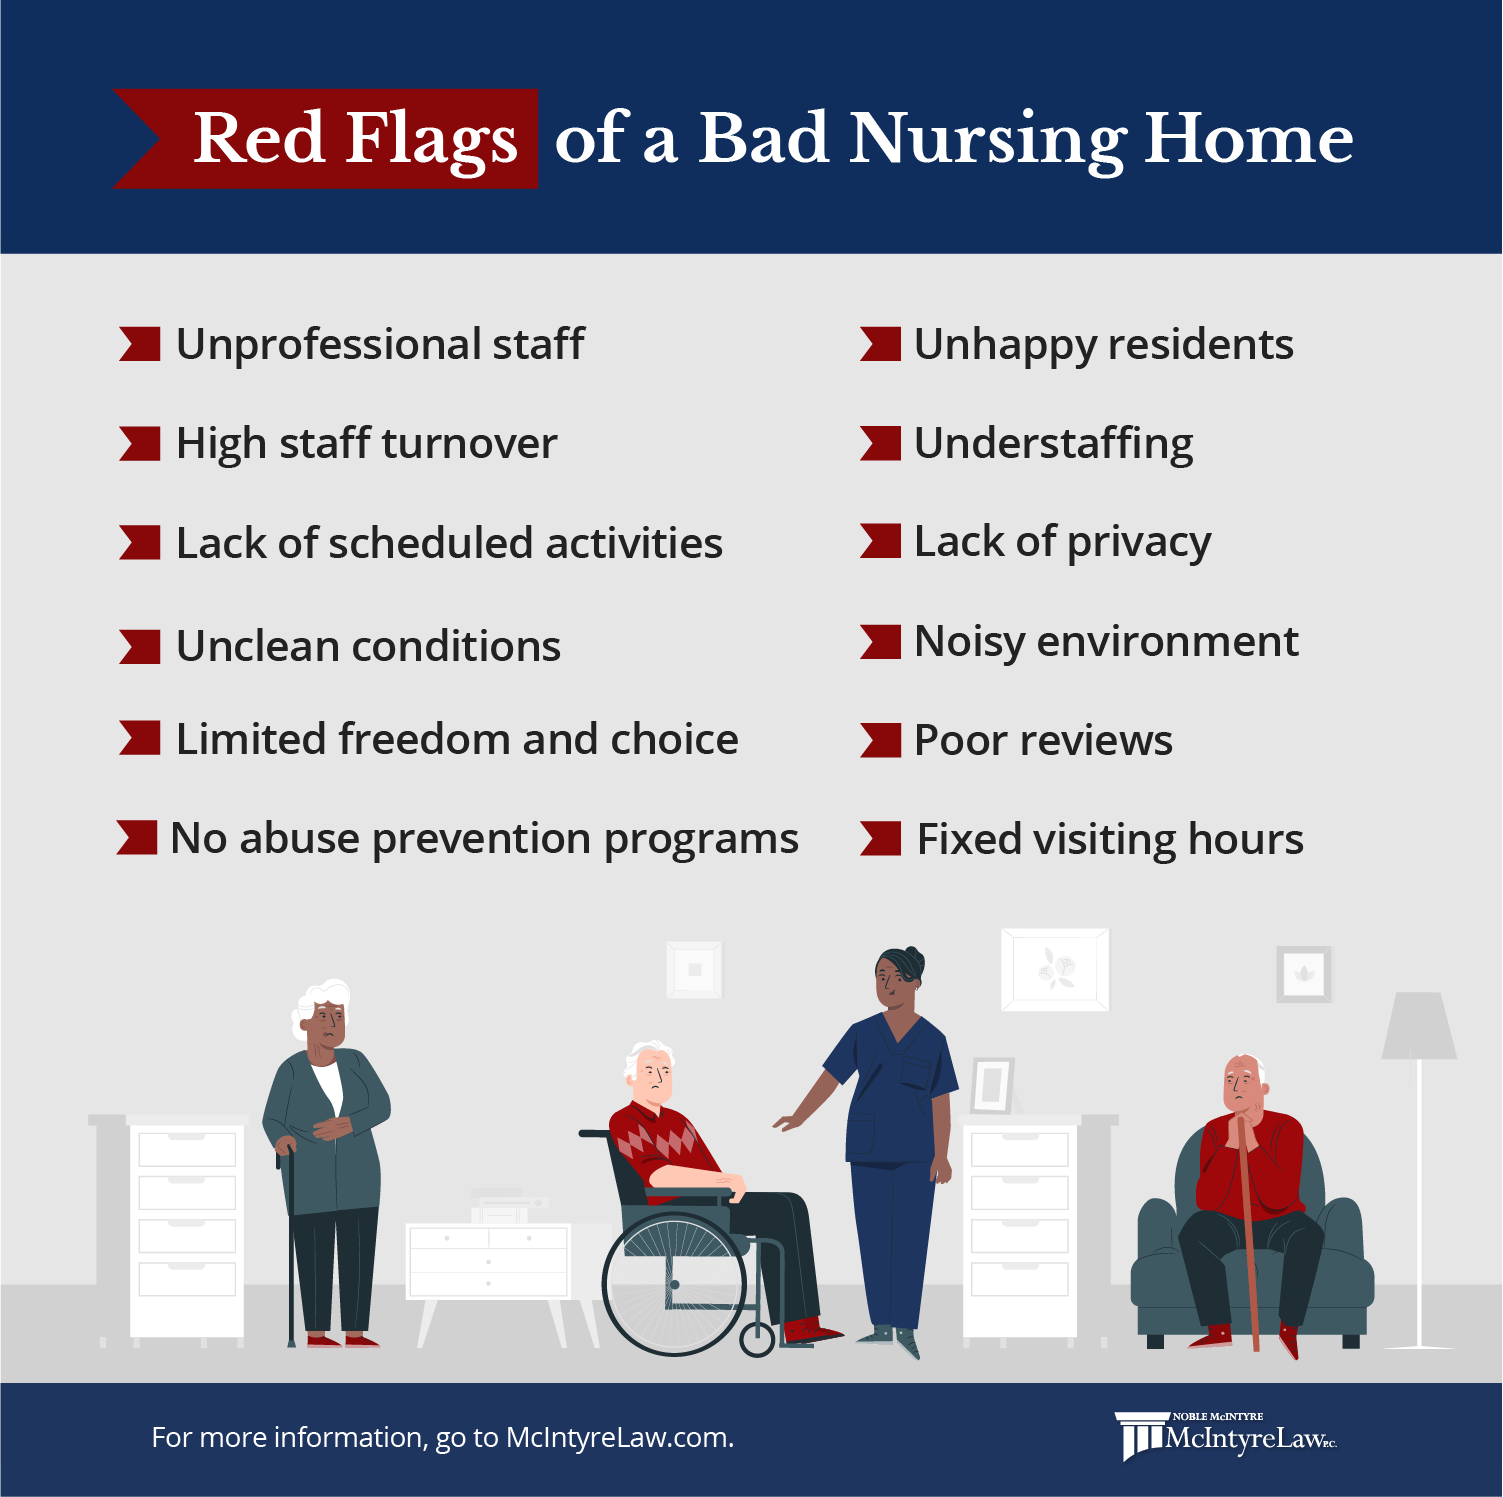 Red flags of nursing home abuse